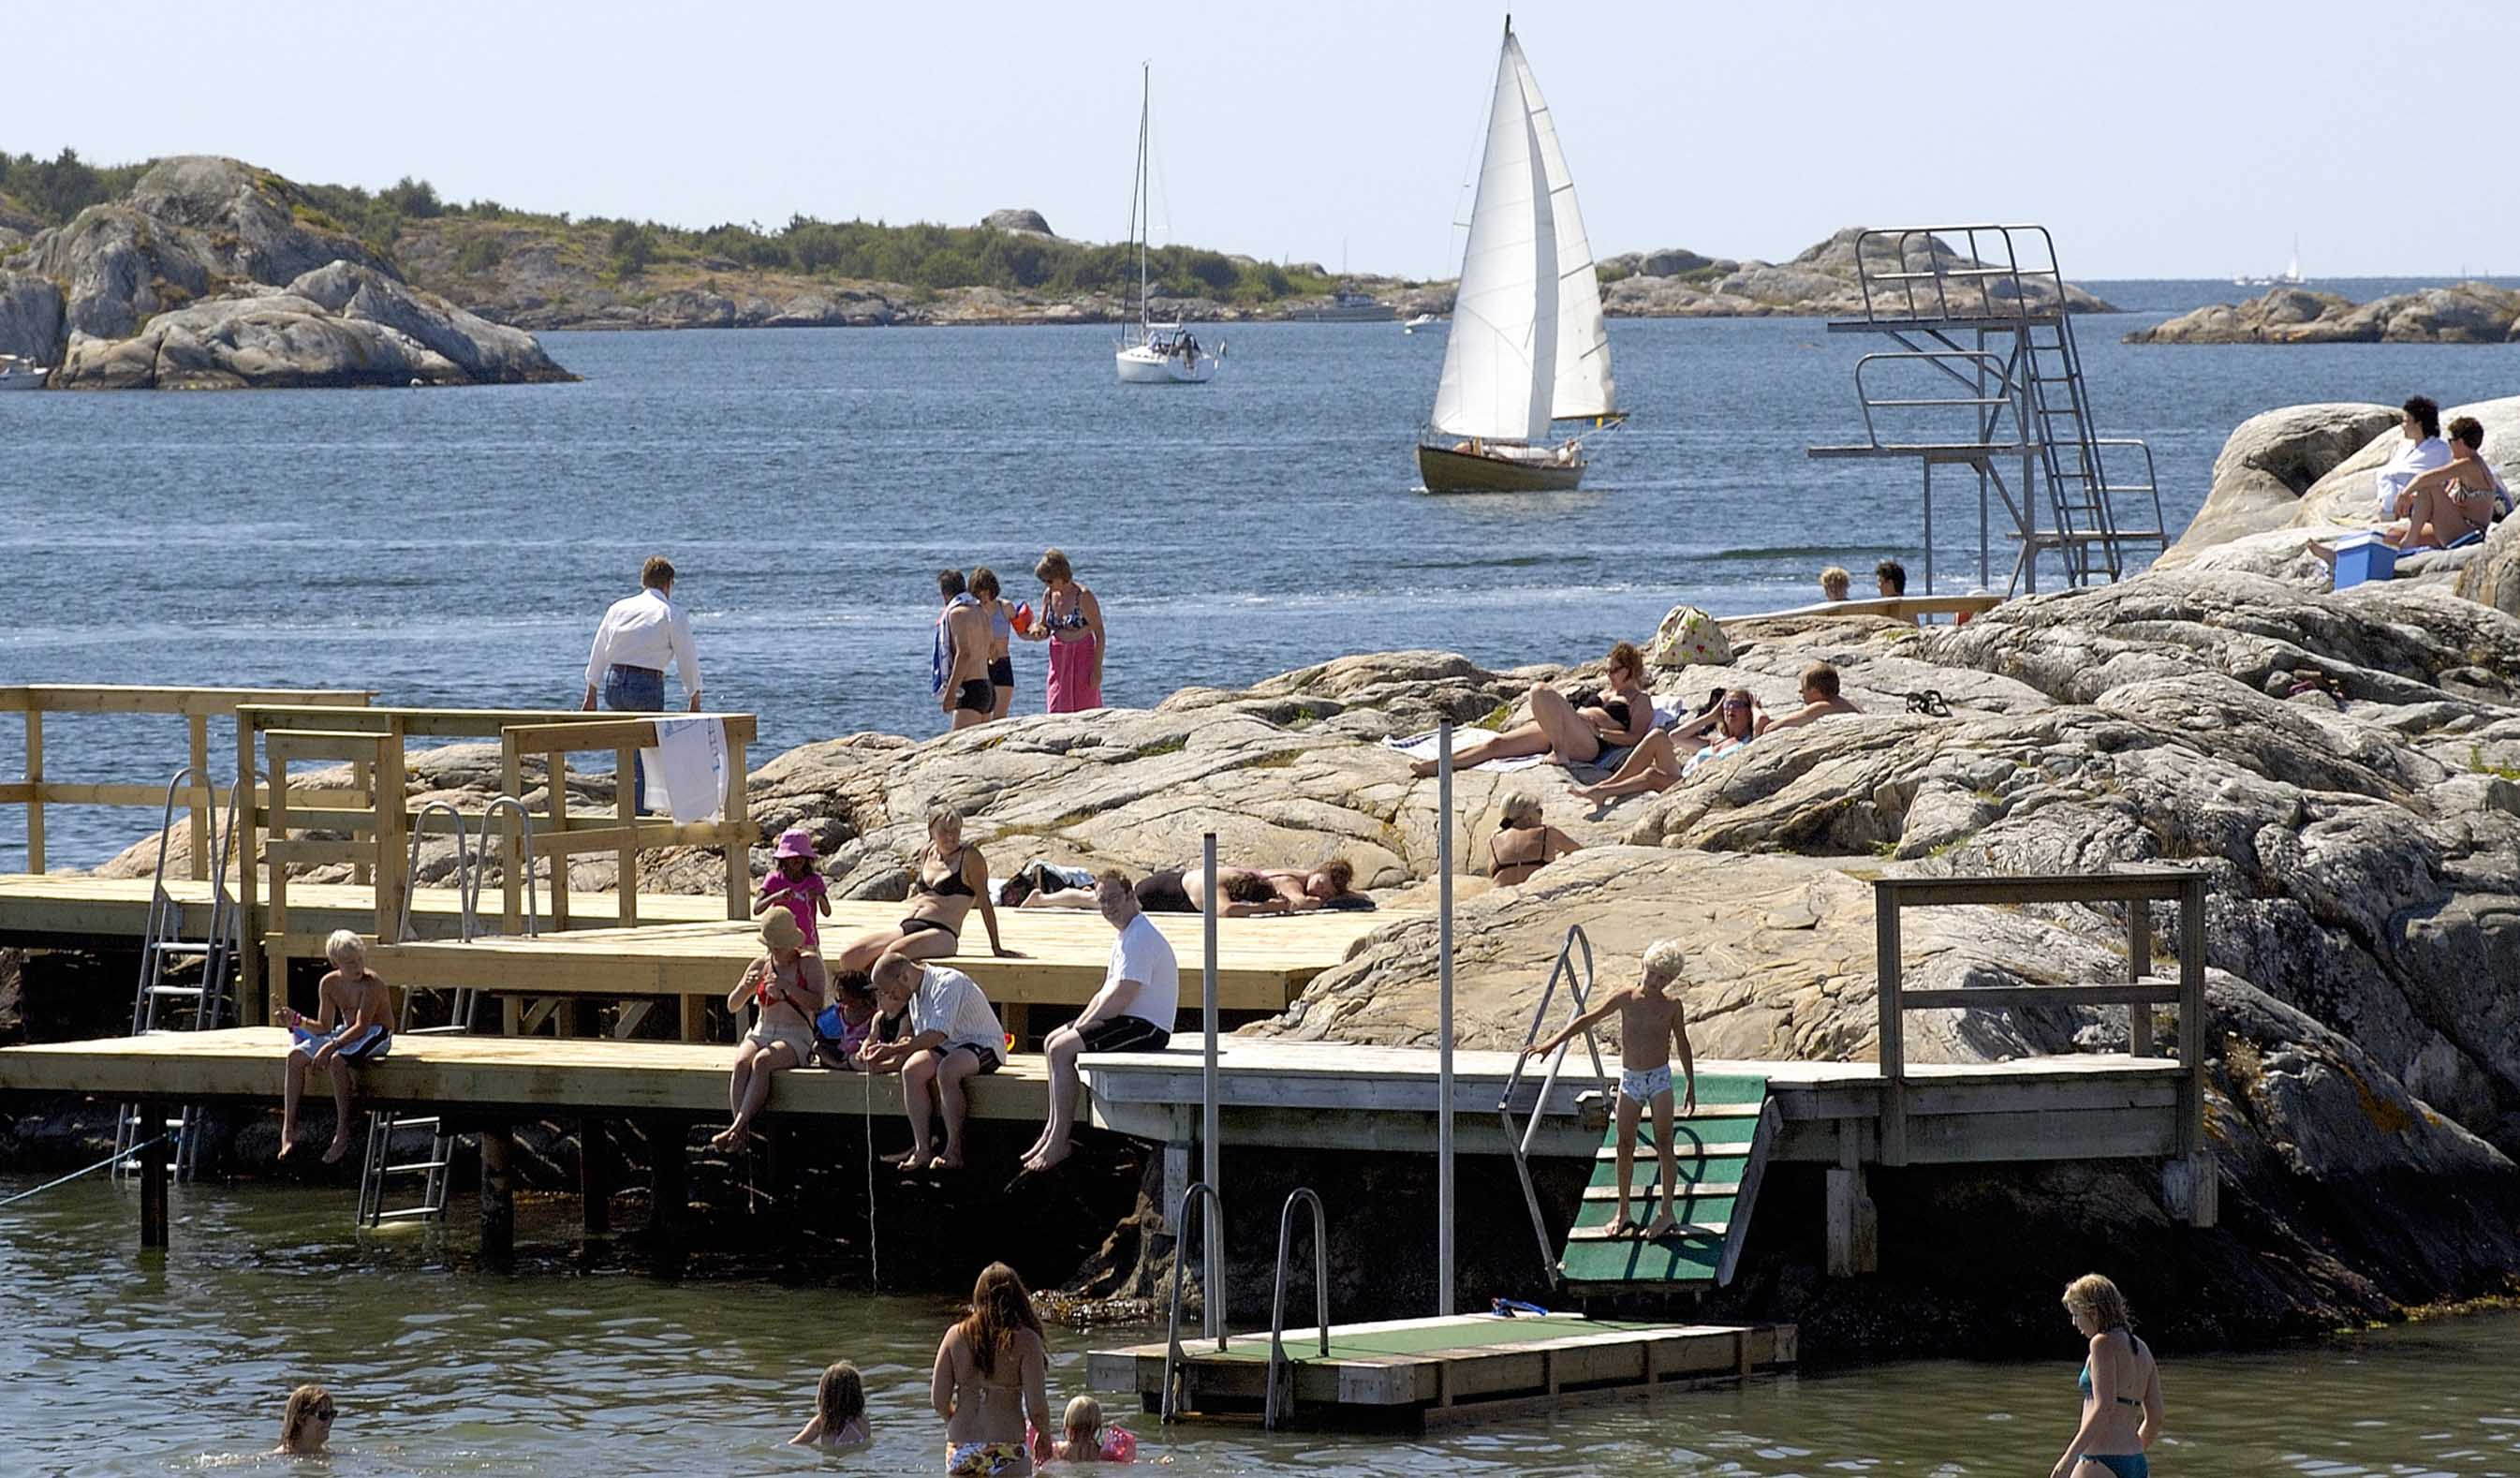 Bathing on an island within easy reach from the city Gothenburg.